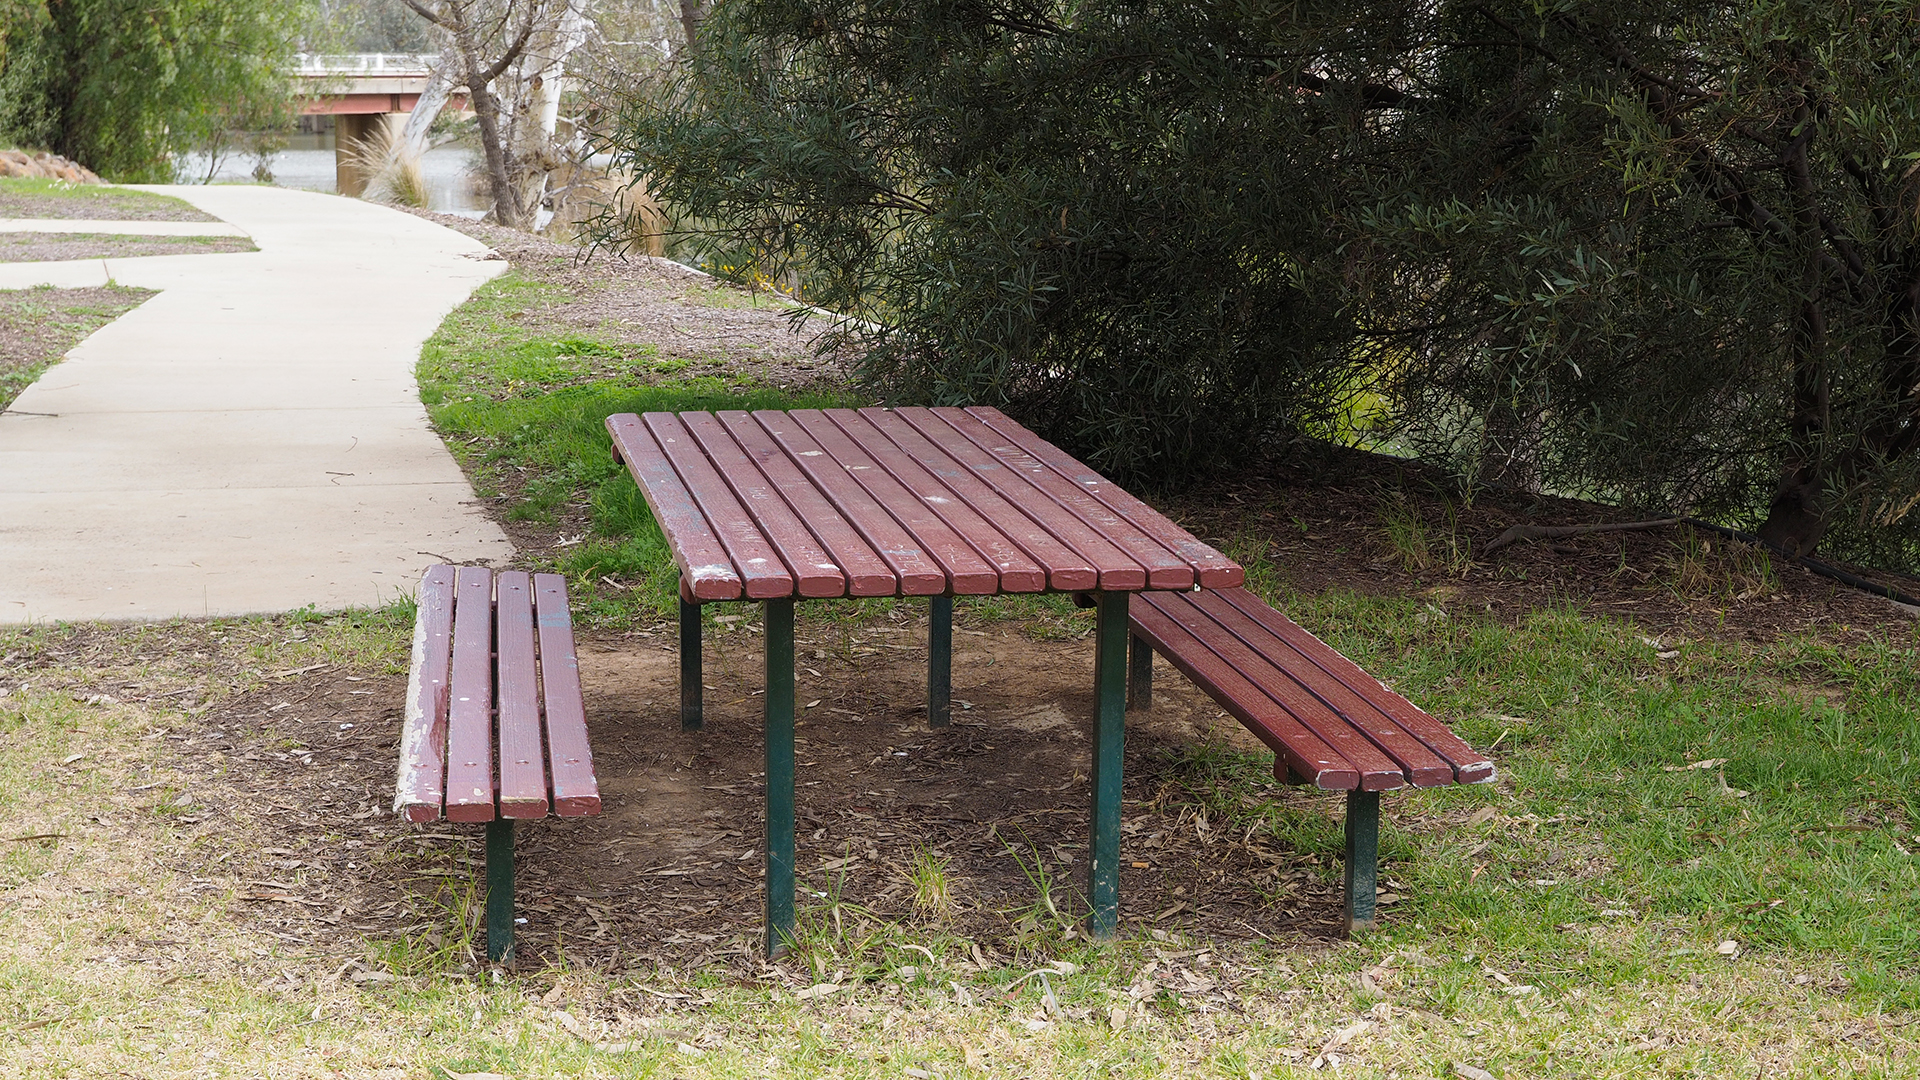 Accessible picnic bench in Bridgewater on Loddon